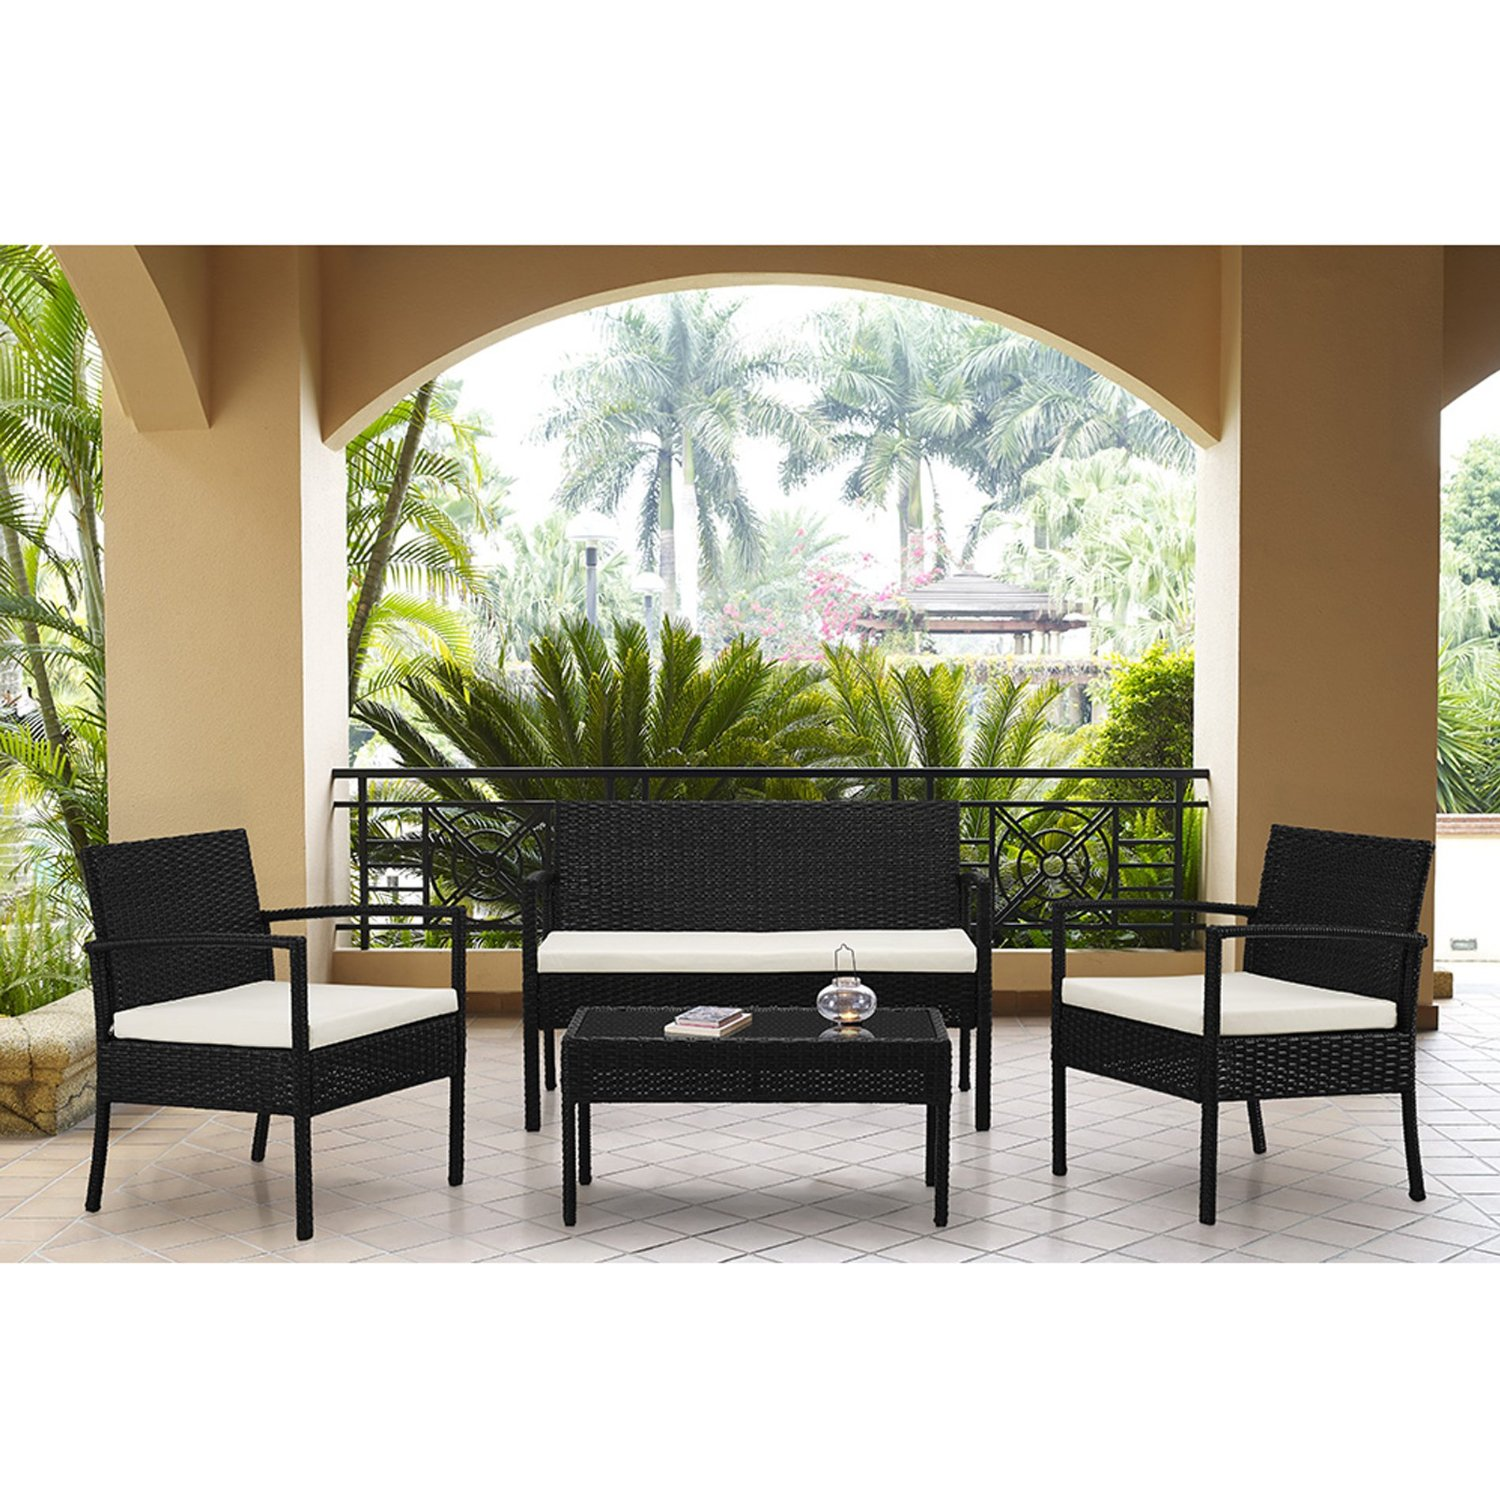 Ronde Sofa Outdoor Garden Patio 4 Piece Cushioned Seat Black Wicker Sofa